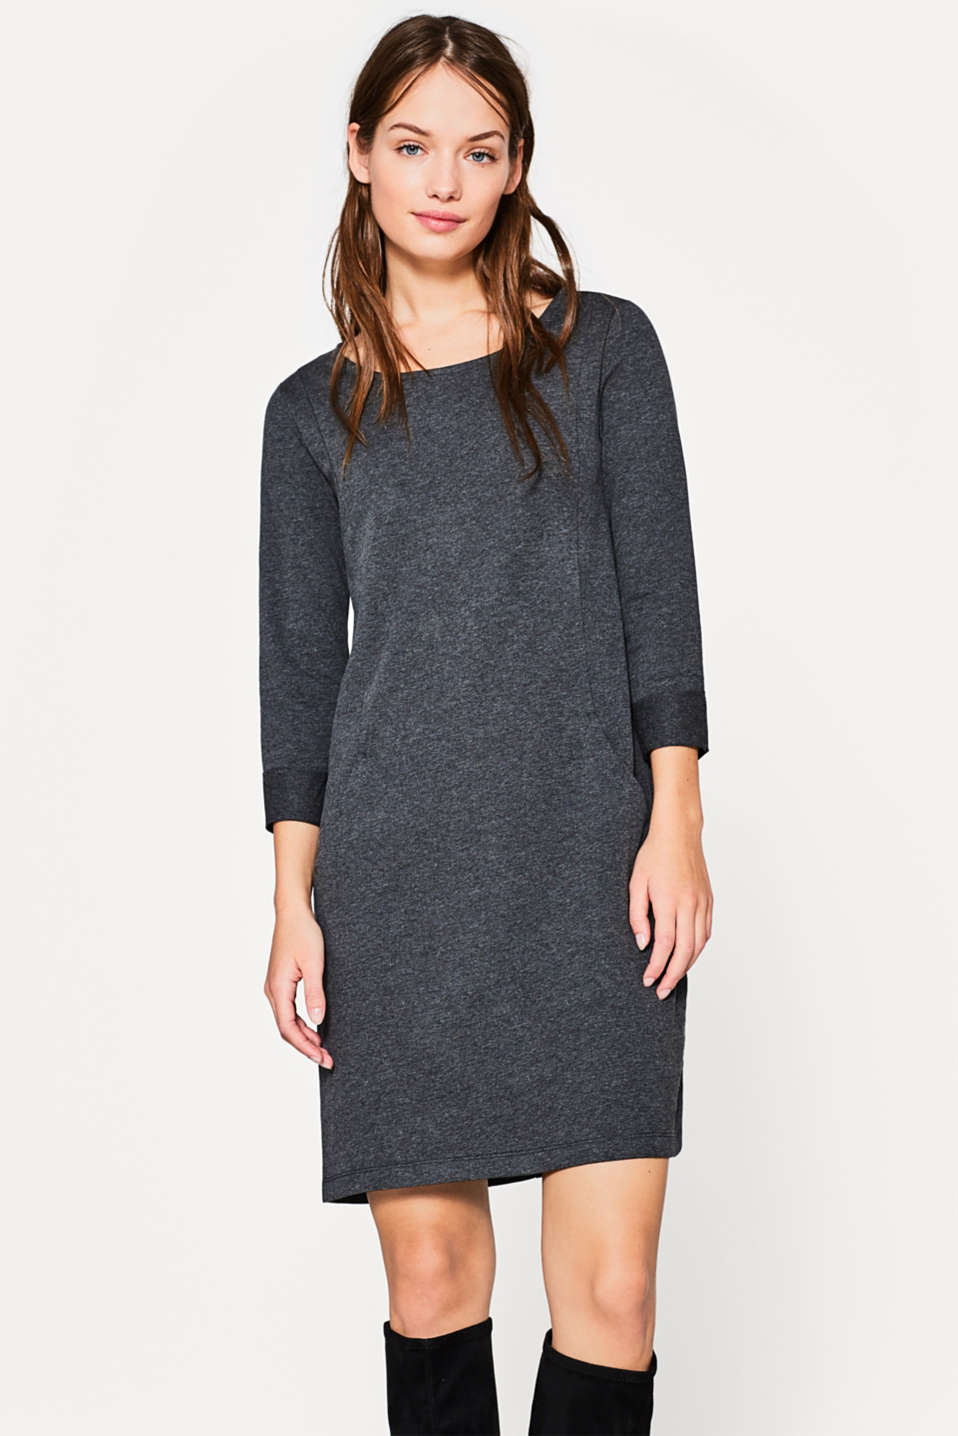 edc - Light sweatshirt dress with pockets